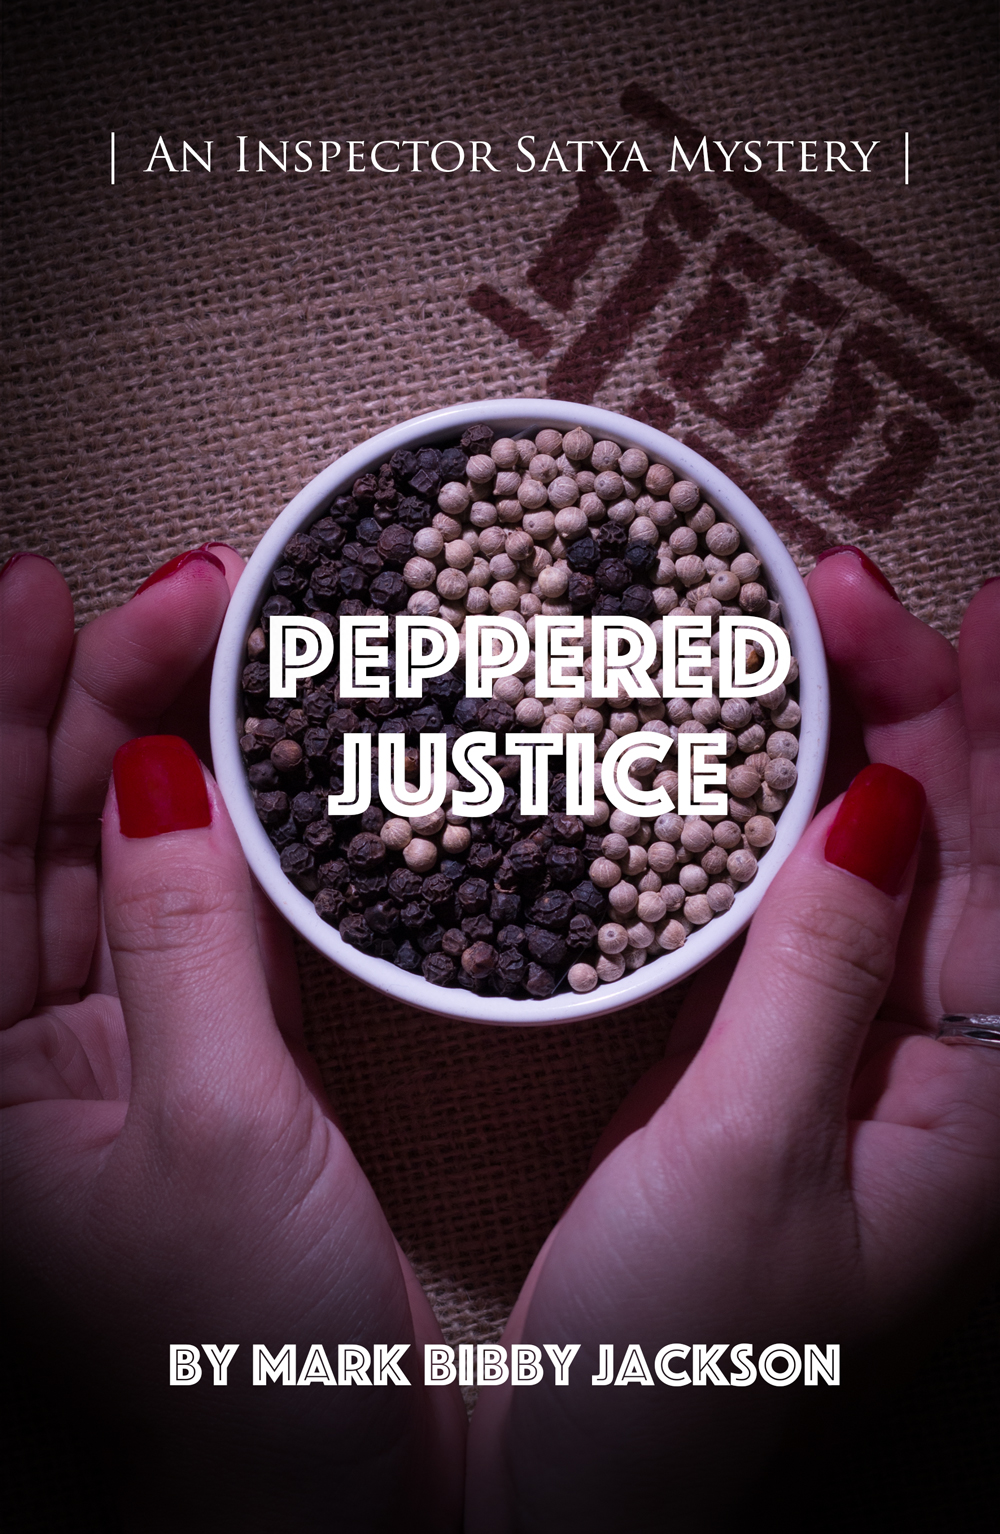 Peppered-Justice-Cover-low-res